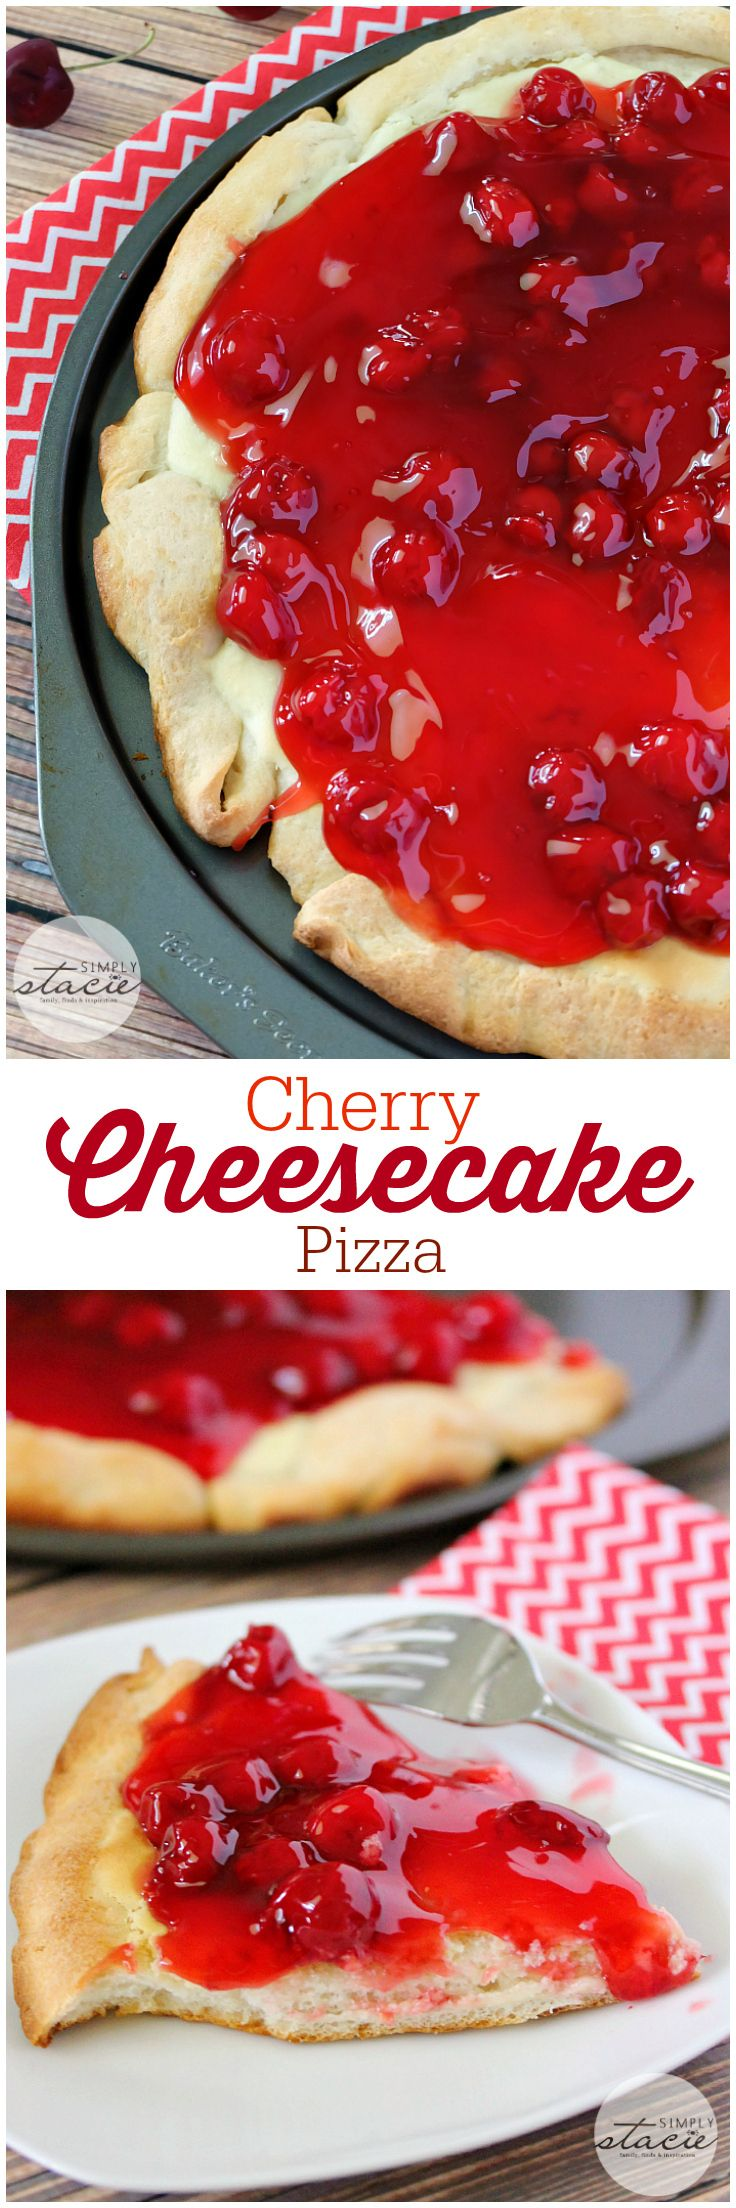 Cherry Cheesecake Pizza - sink your teeth into a creamy cheesecake layer followed by sweet cherry filling.